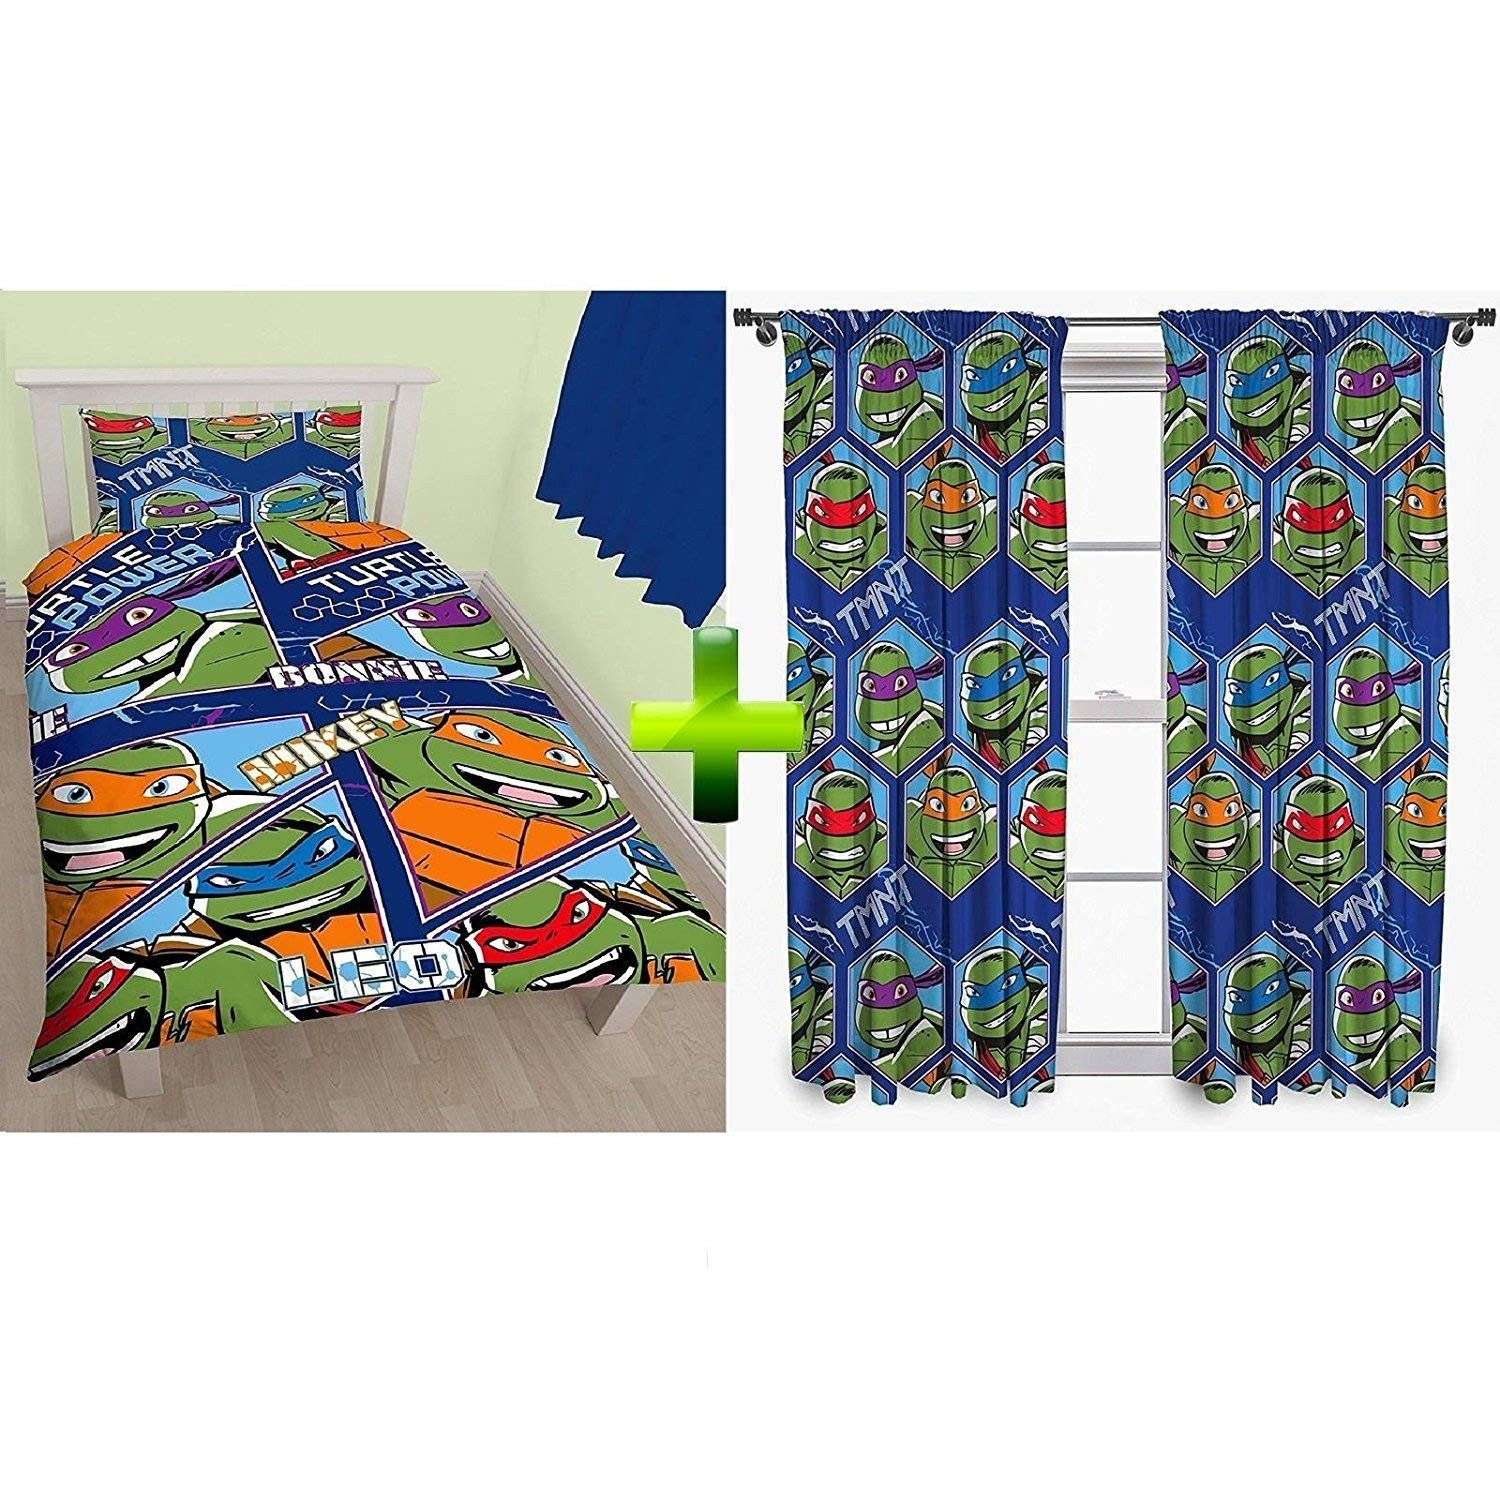 "Ninja Turtle Bedroom Set Awesome Teenage Mutant Ninja Turtles 66x54"" Curtains Tmnt Single Duvet Set Quilt Cover Bedding"